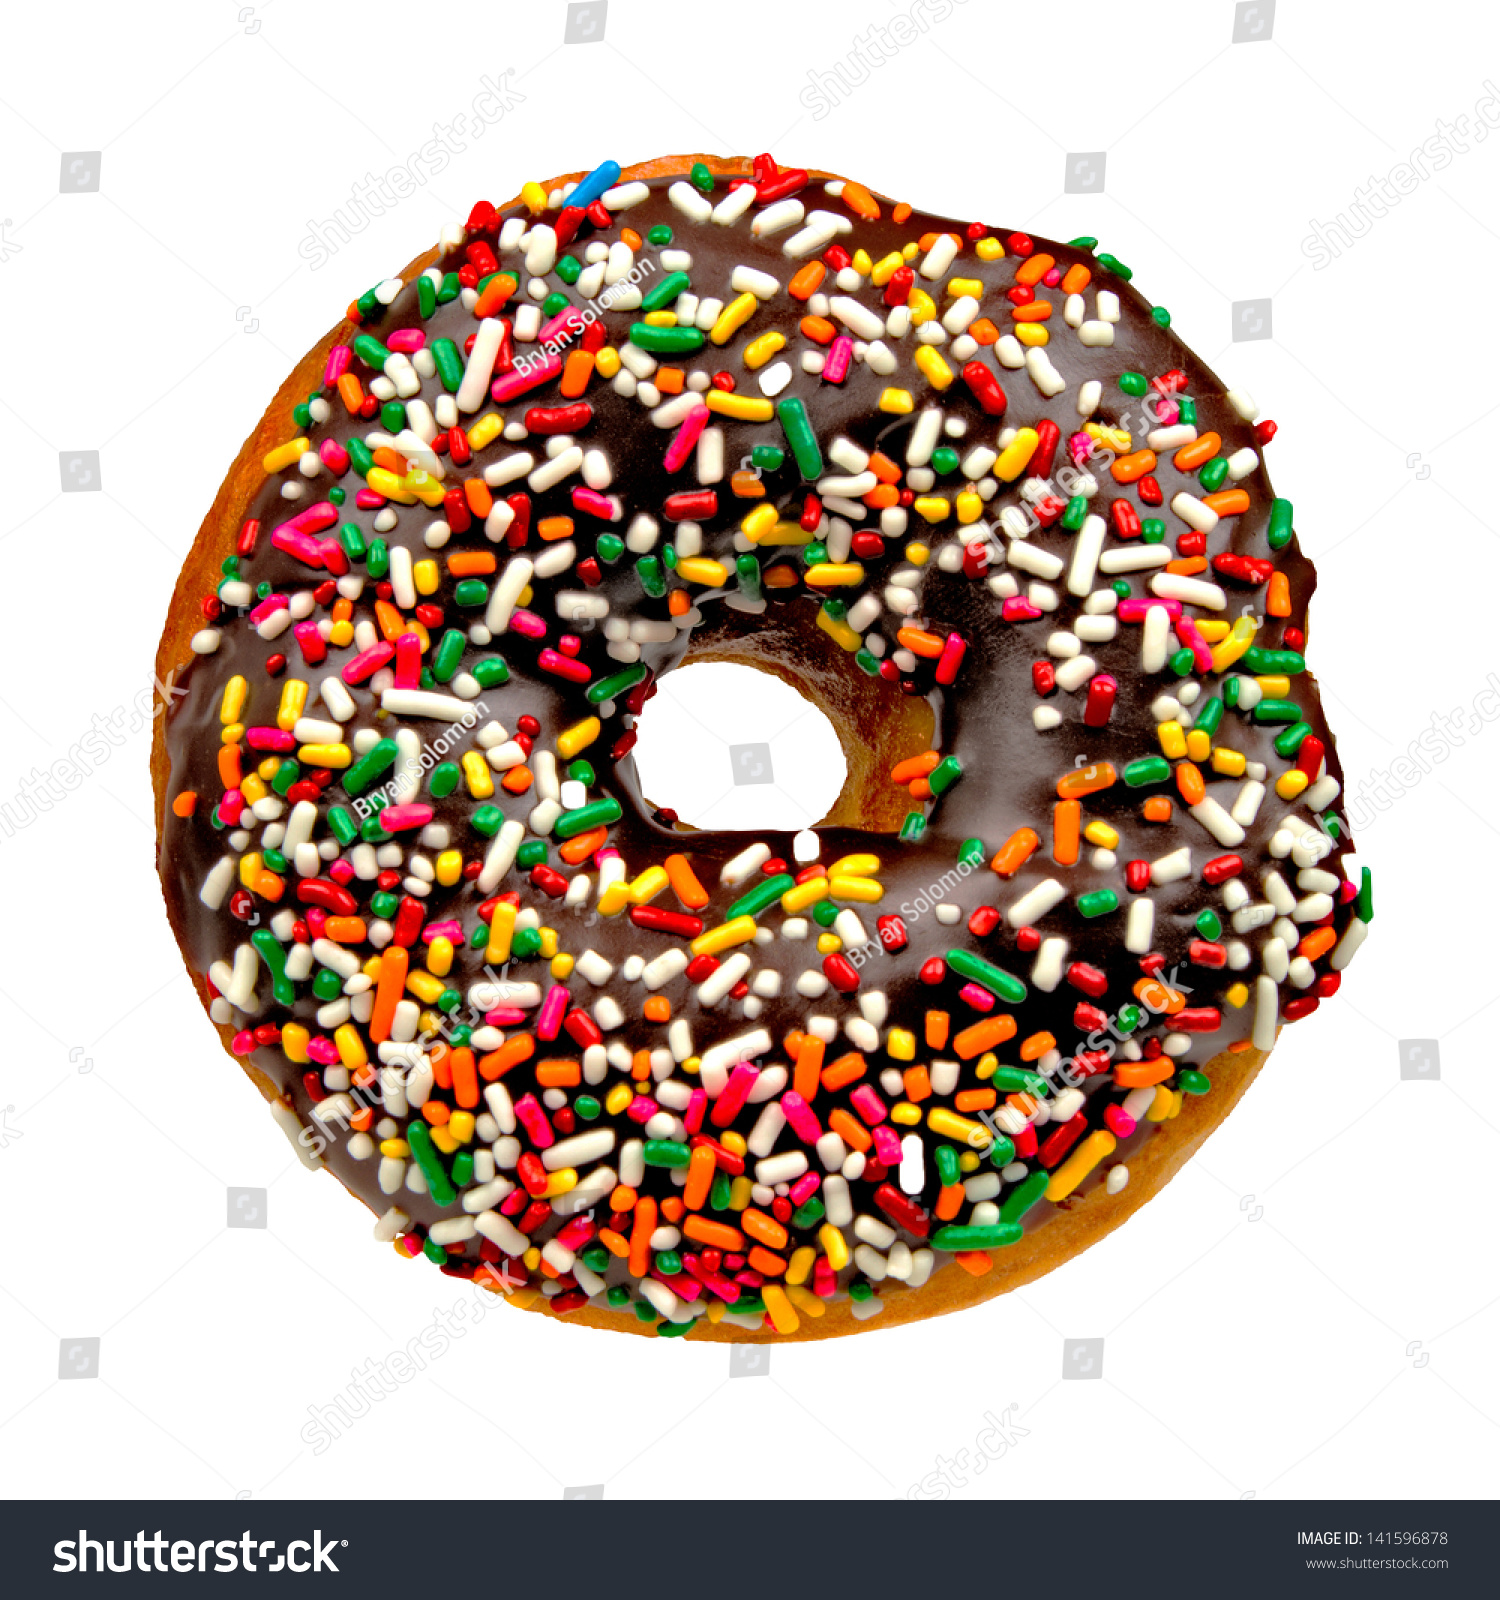 Calories In A Cake Donut With Chocolate Frosting And Sprinkles